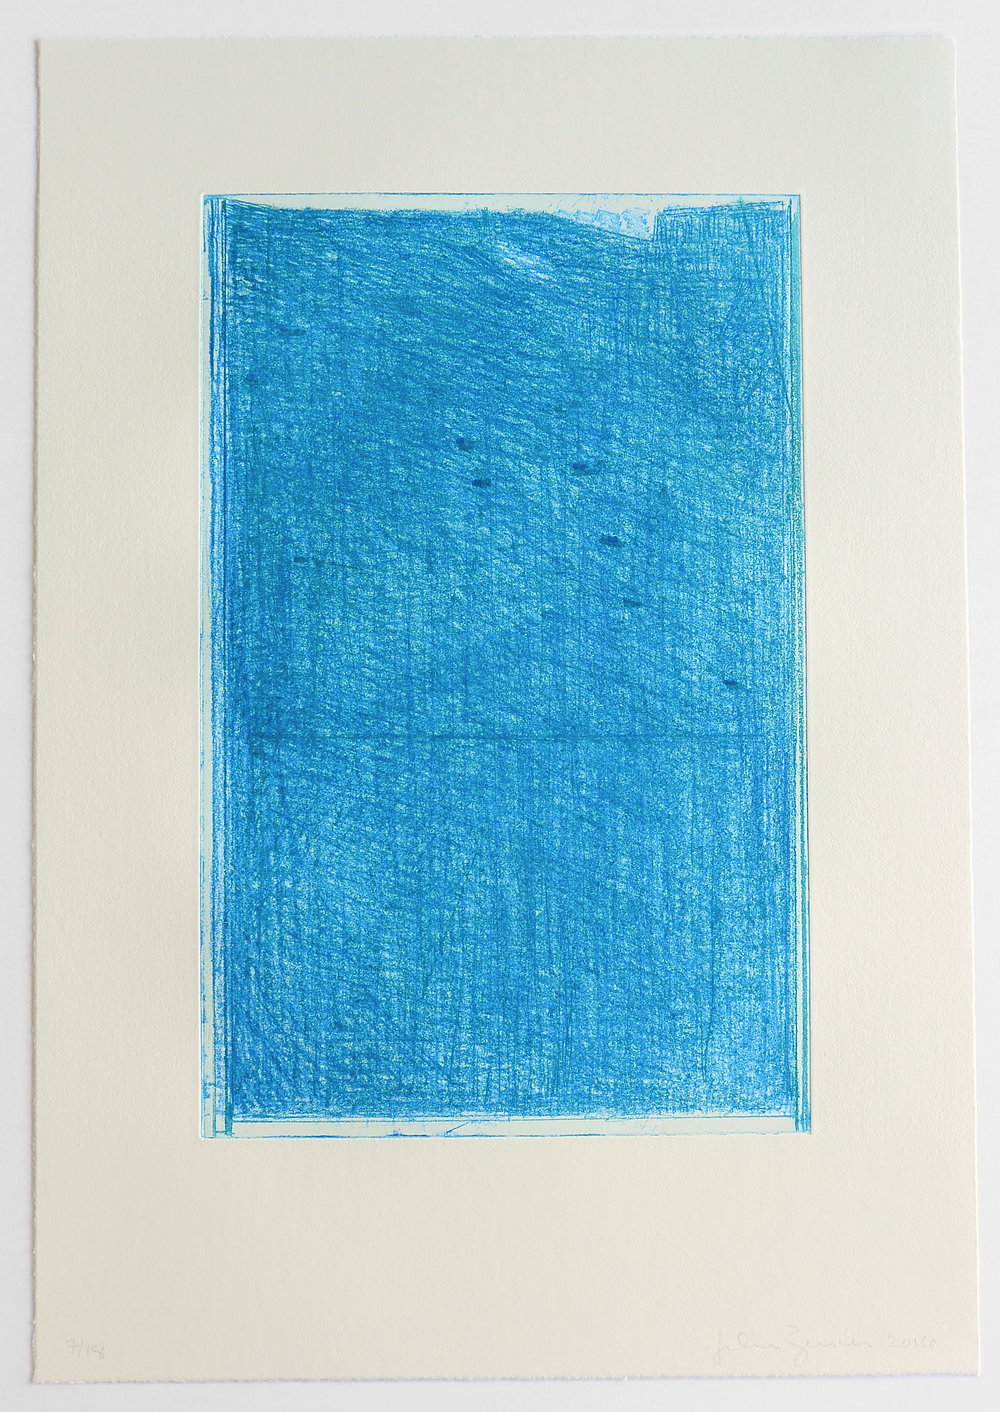 John Zurier,  Blue-green Softground,  2016, Soft ground etching, ed.18, sheet: 22 1/2 x 15 5/8 inches; image: 15 3/4 x 10 1/8 inches, JZU161  12/12  Lawrence Markey Inc.